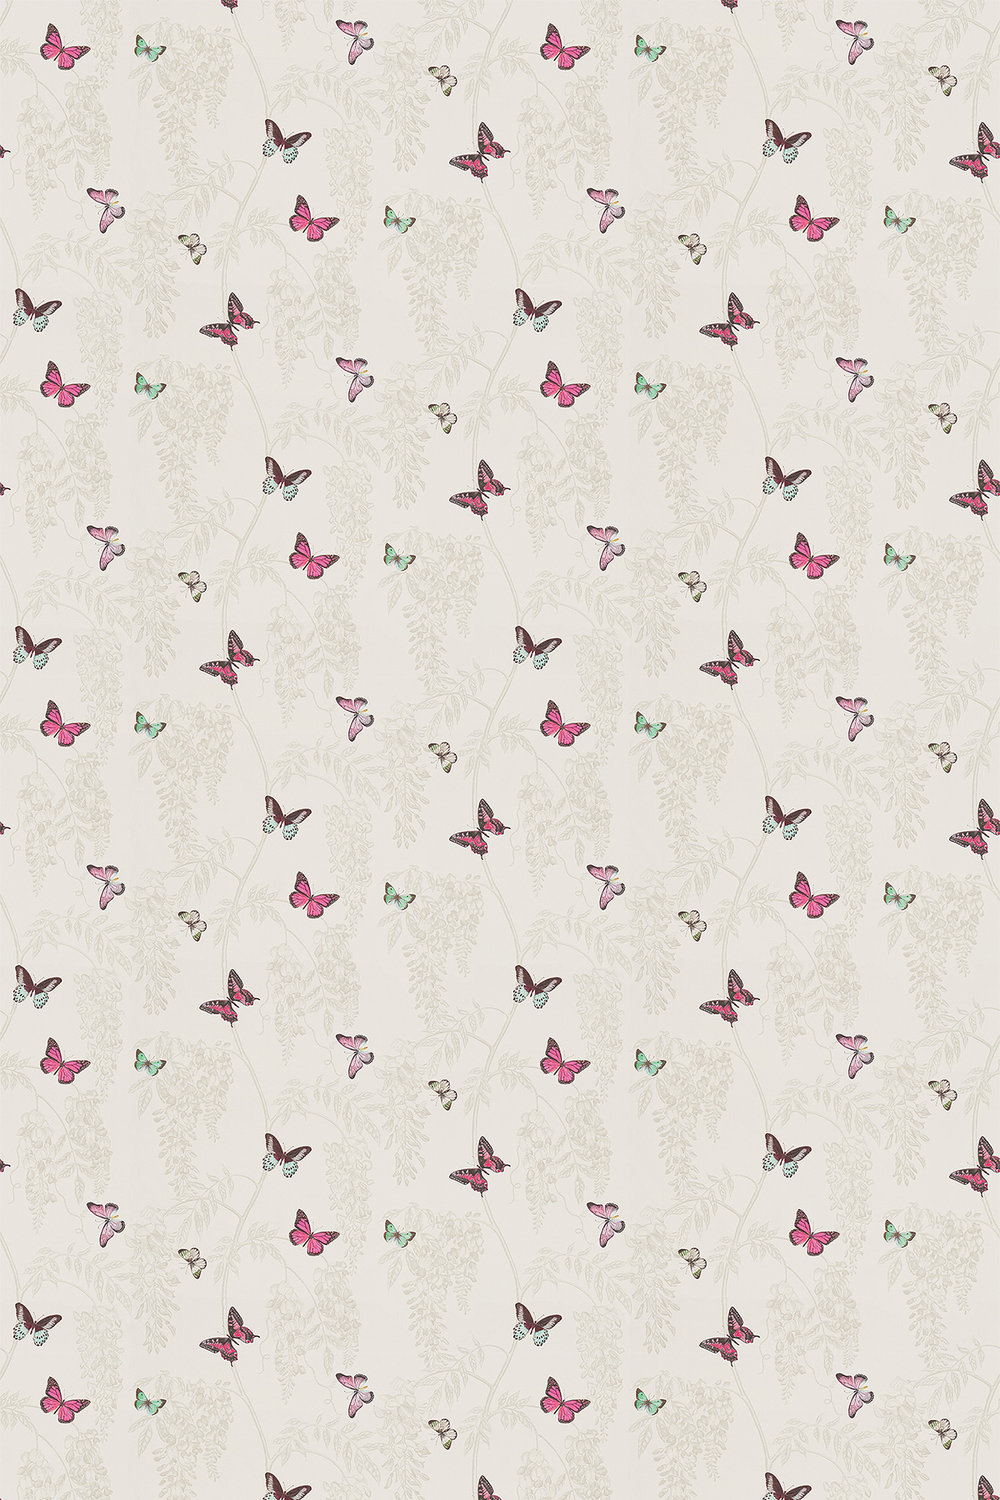 Wisteria & Butterfly Fabric - Fuchsia / Parchment - by Sanderson